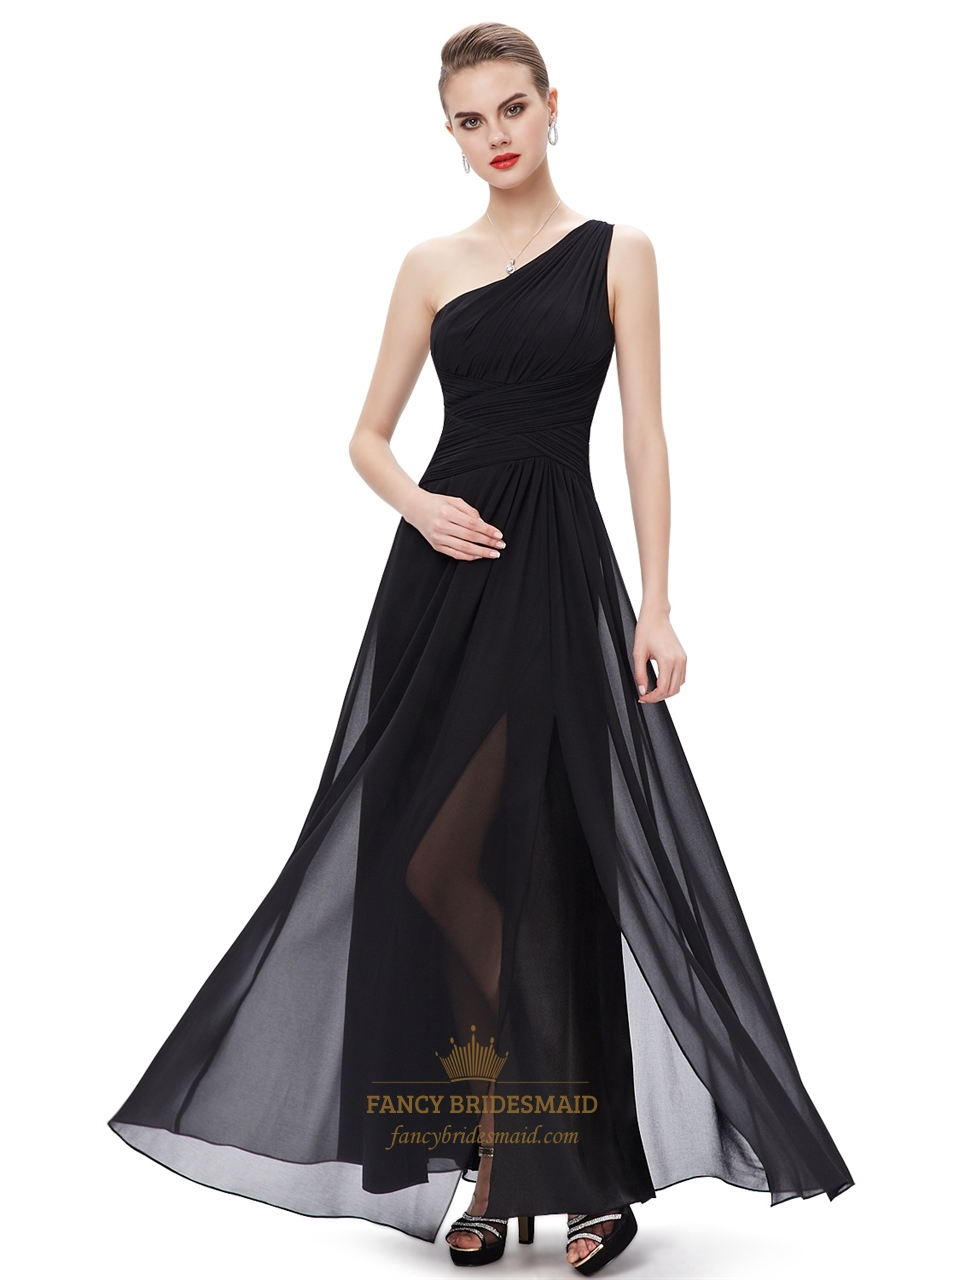 Long flowy chiffon bridesmaid dresses fancy bridesmaid dresses black chiffon one shoulder floor length bridesmaid dresses with split ombrellifo Gallery